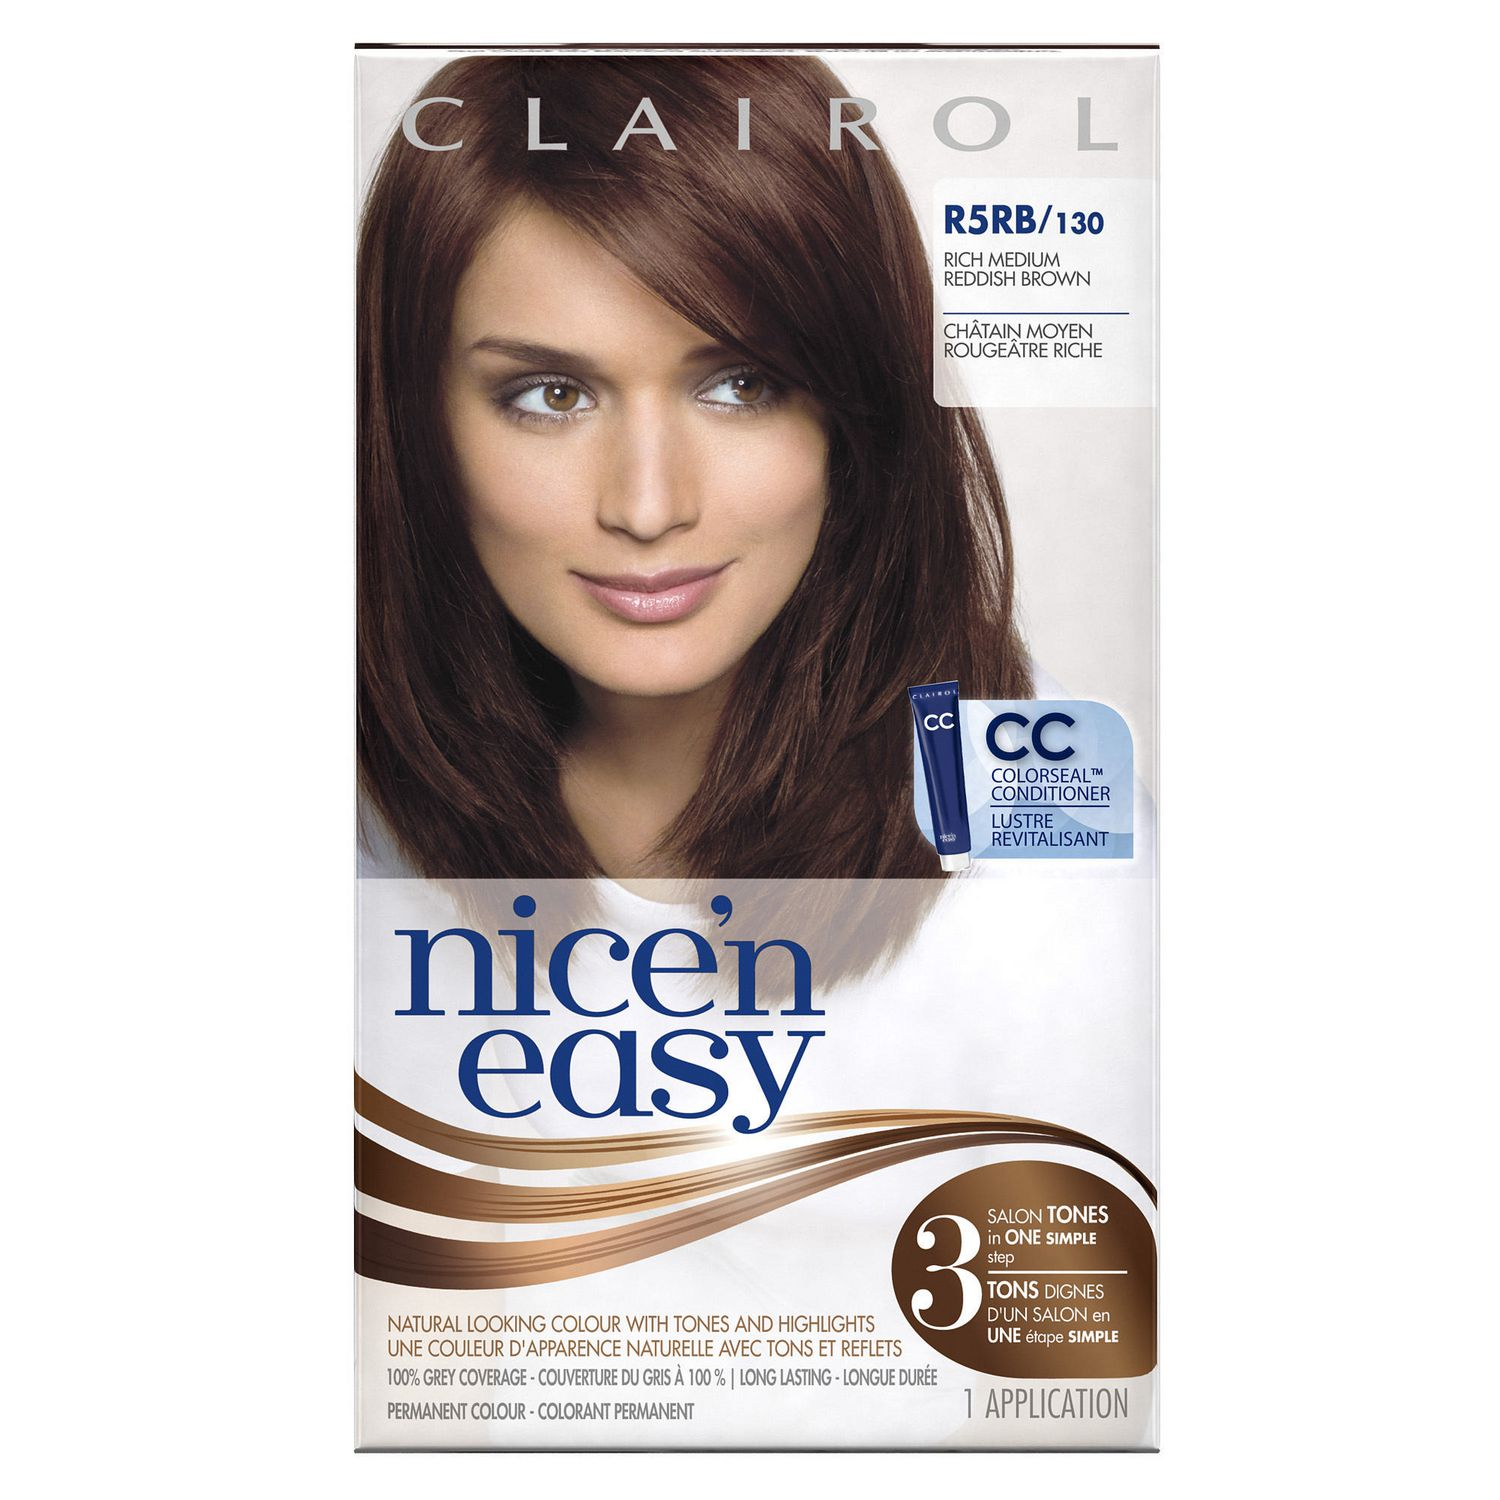 Clairol nicen easy hair colour kit walmart canada solutioingenieria